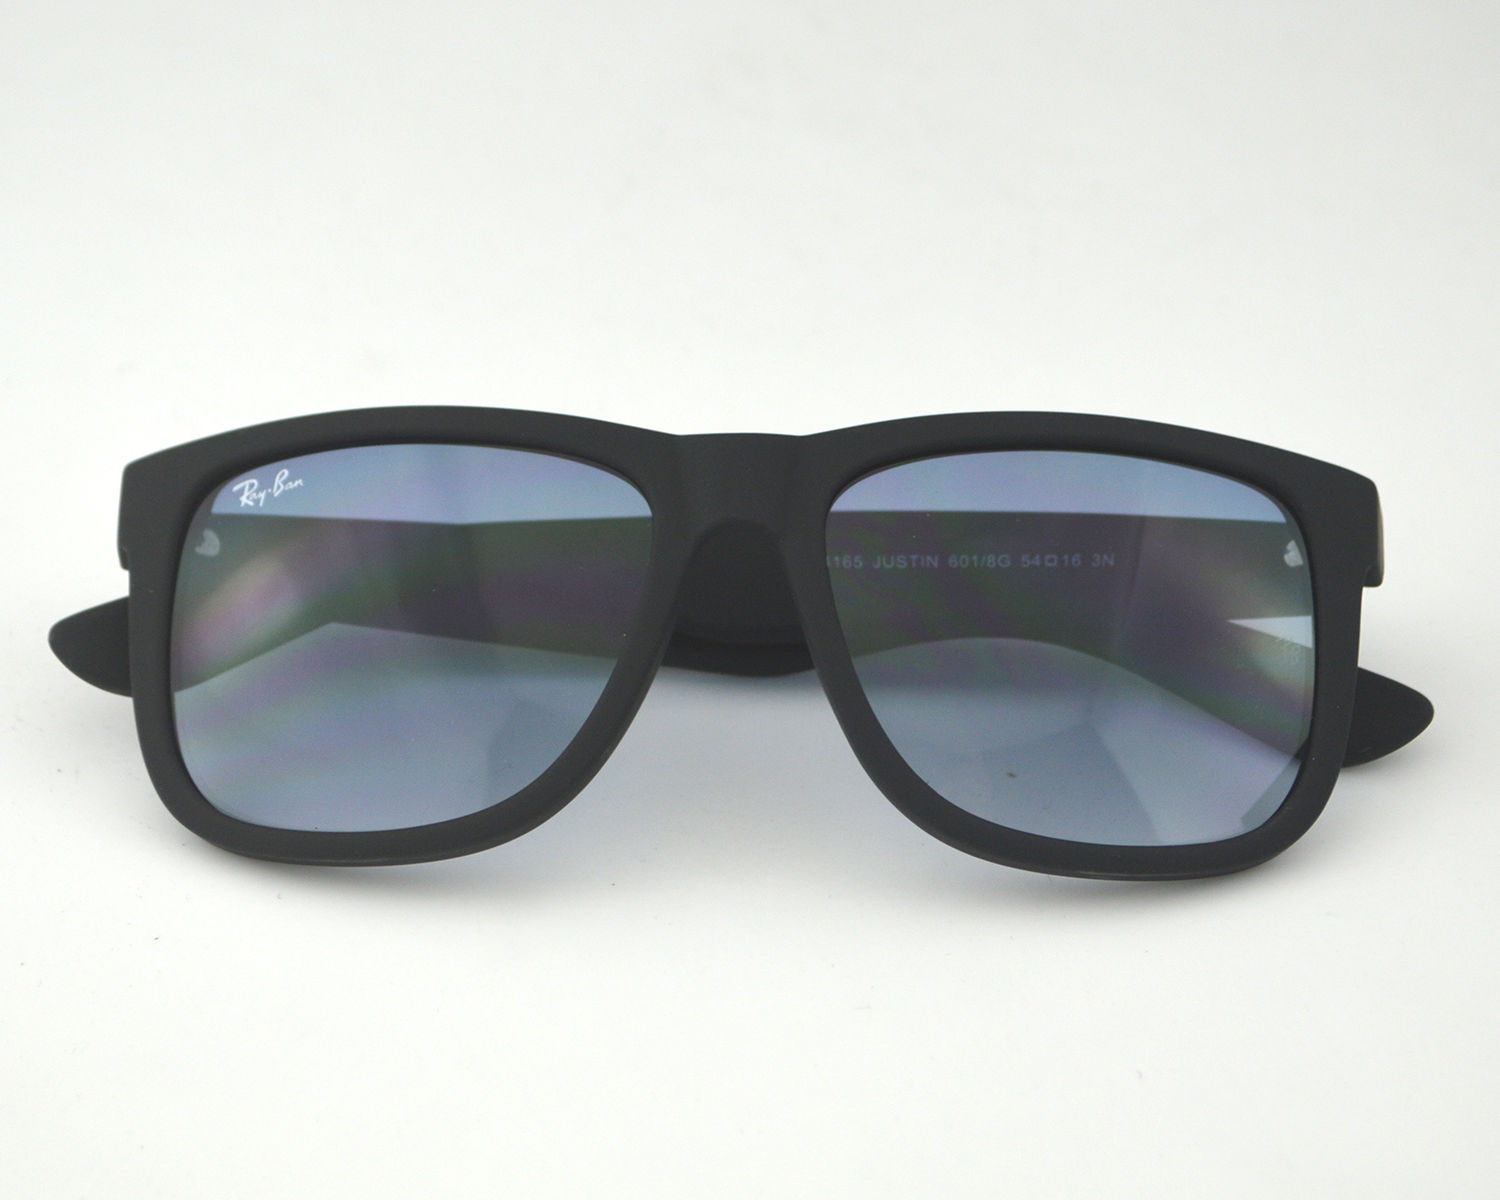 2a0150a4ab Ray Ban RB4165 Justin Classic 601 8G Black Frame Grey Gradient Lenses  Sunglasses 55mm